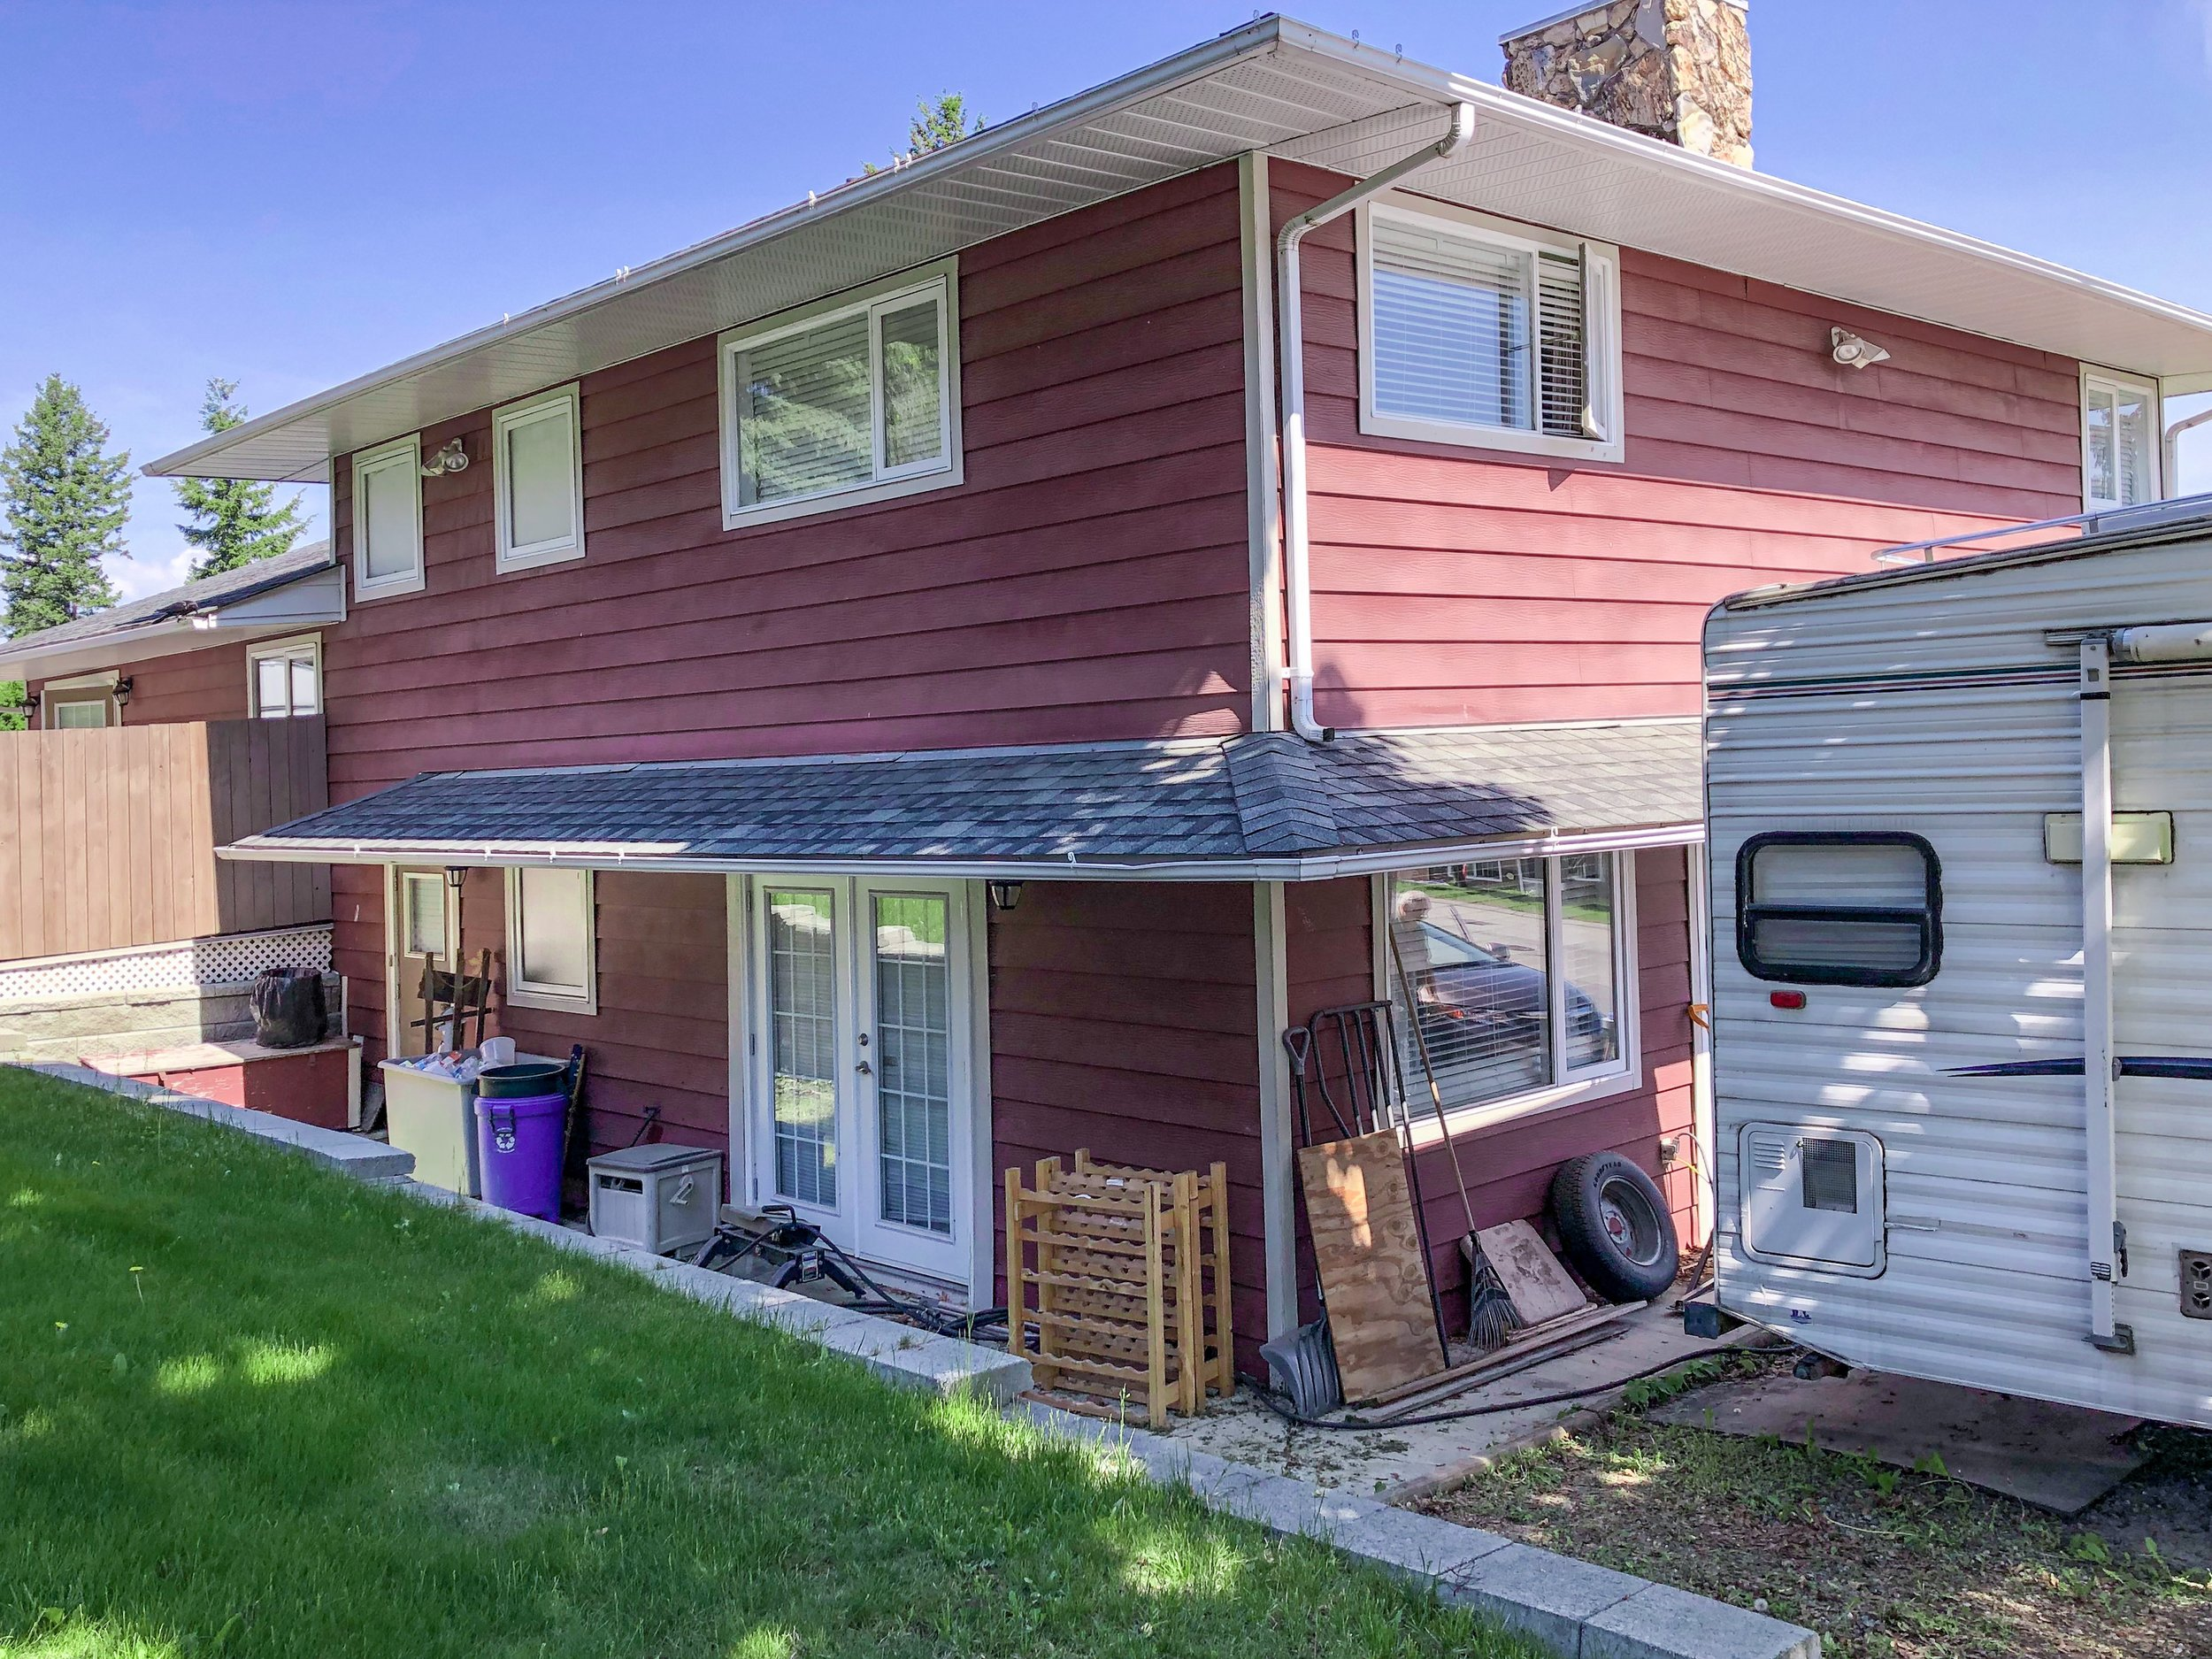 2032-sifton-avenue-kamloops-bc-aberdeen-for-sale-exterior-back-side.jpg